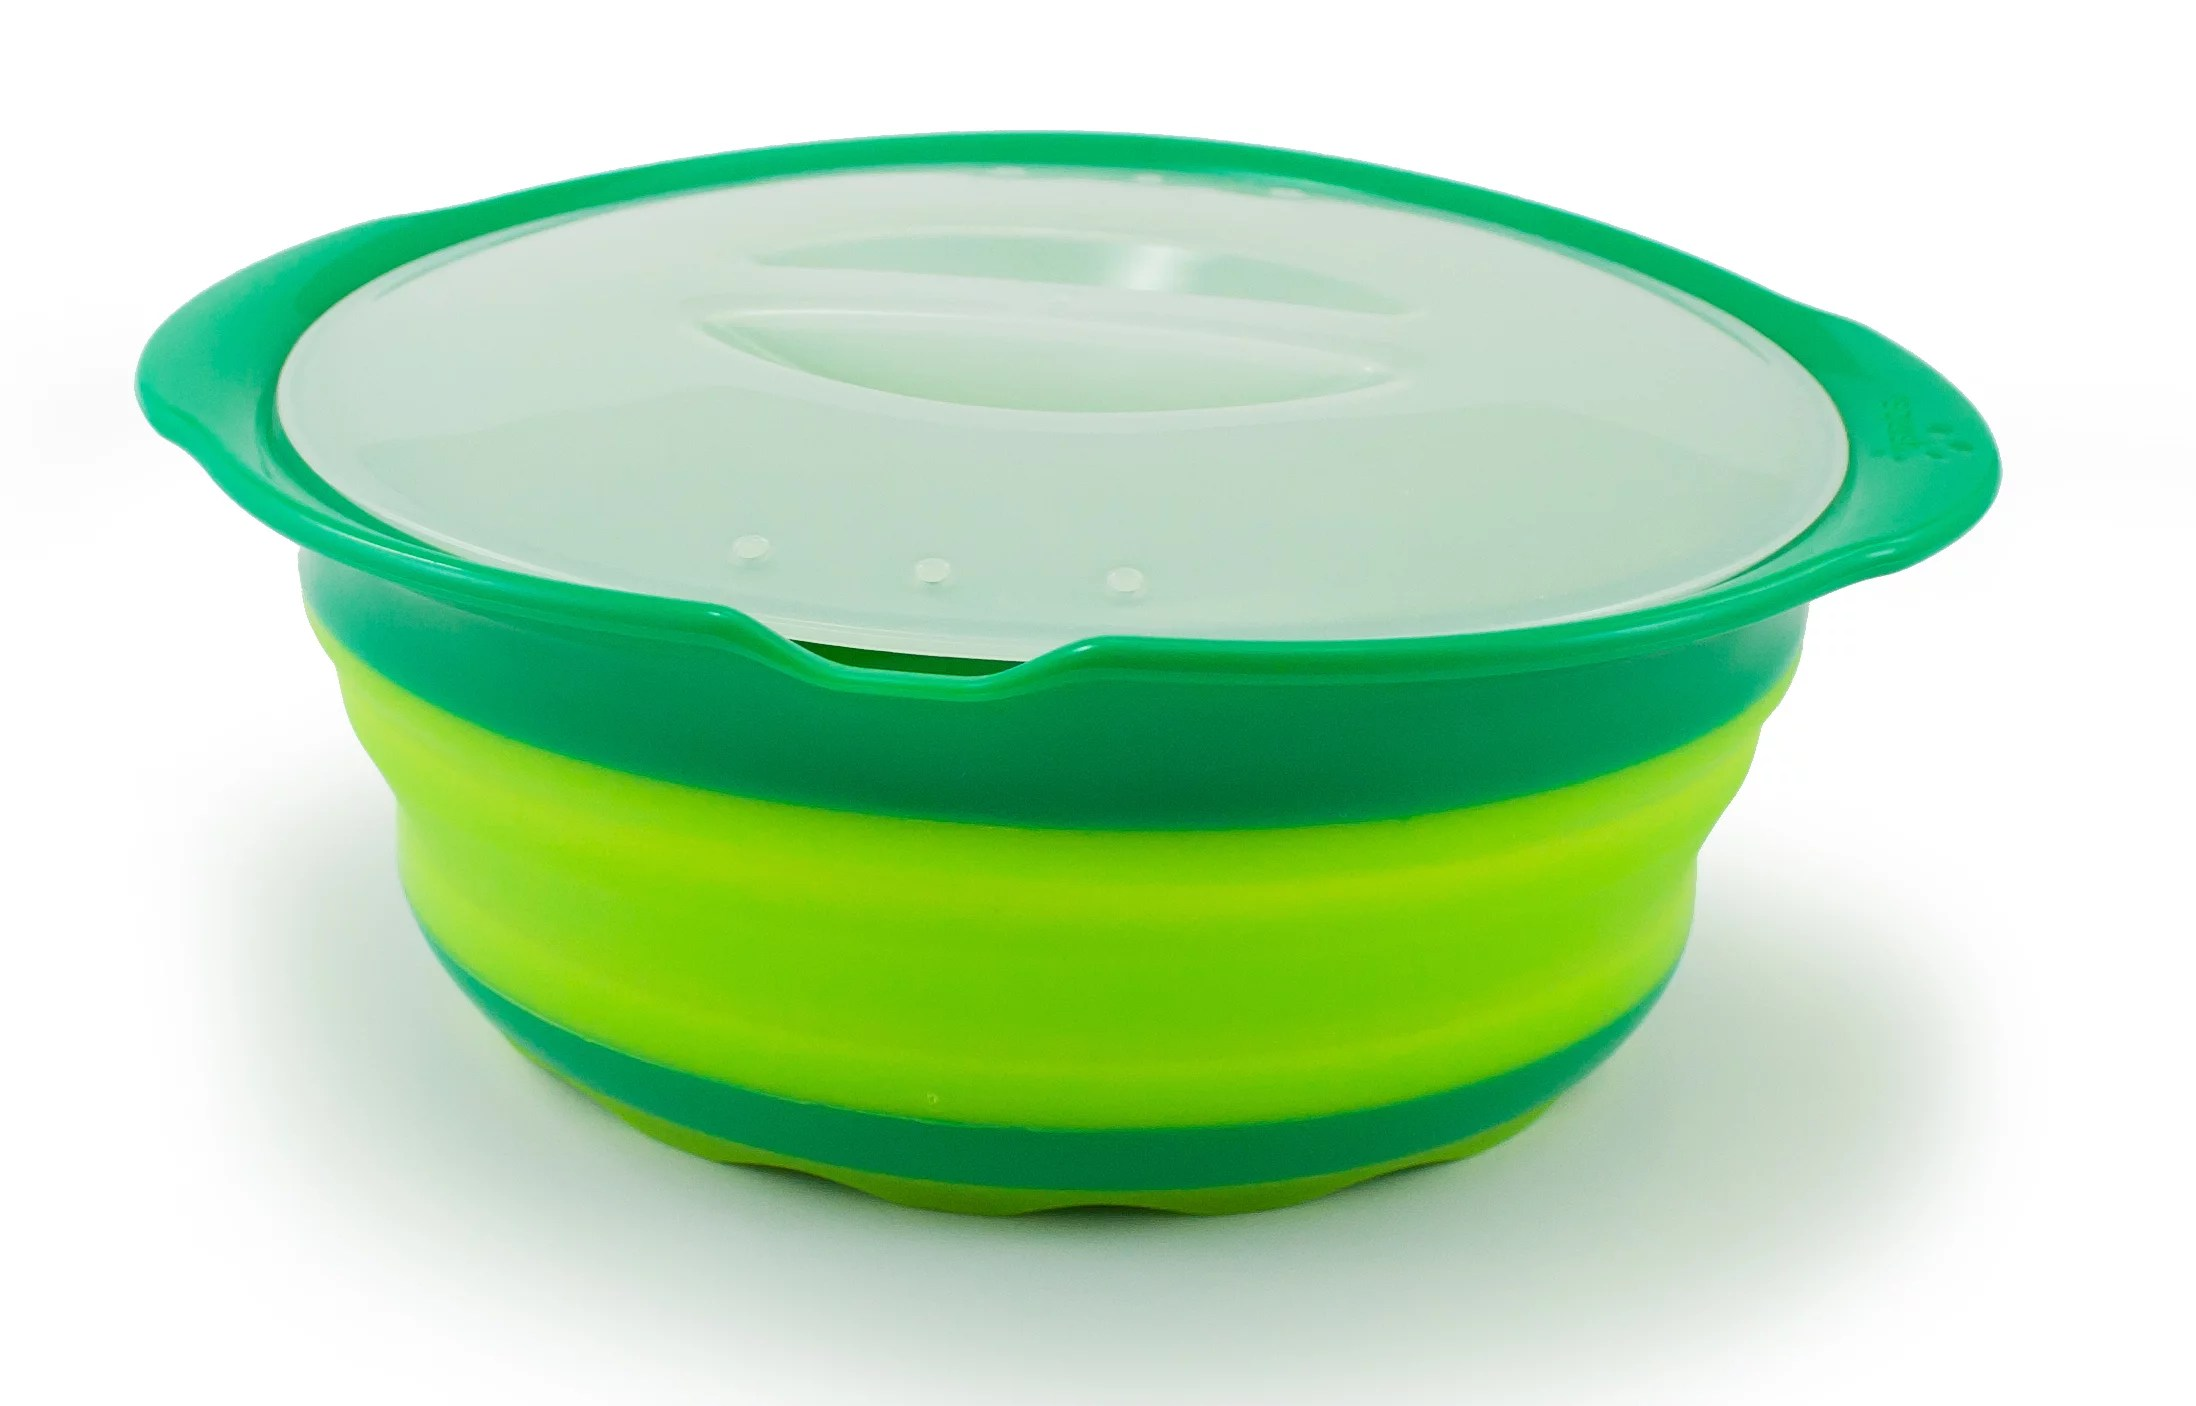 squish 1 25 quart collapsible microwave steamer